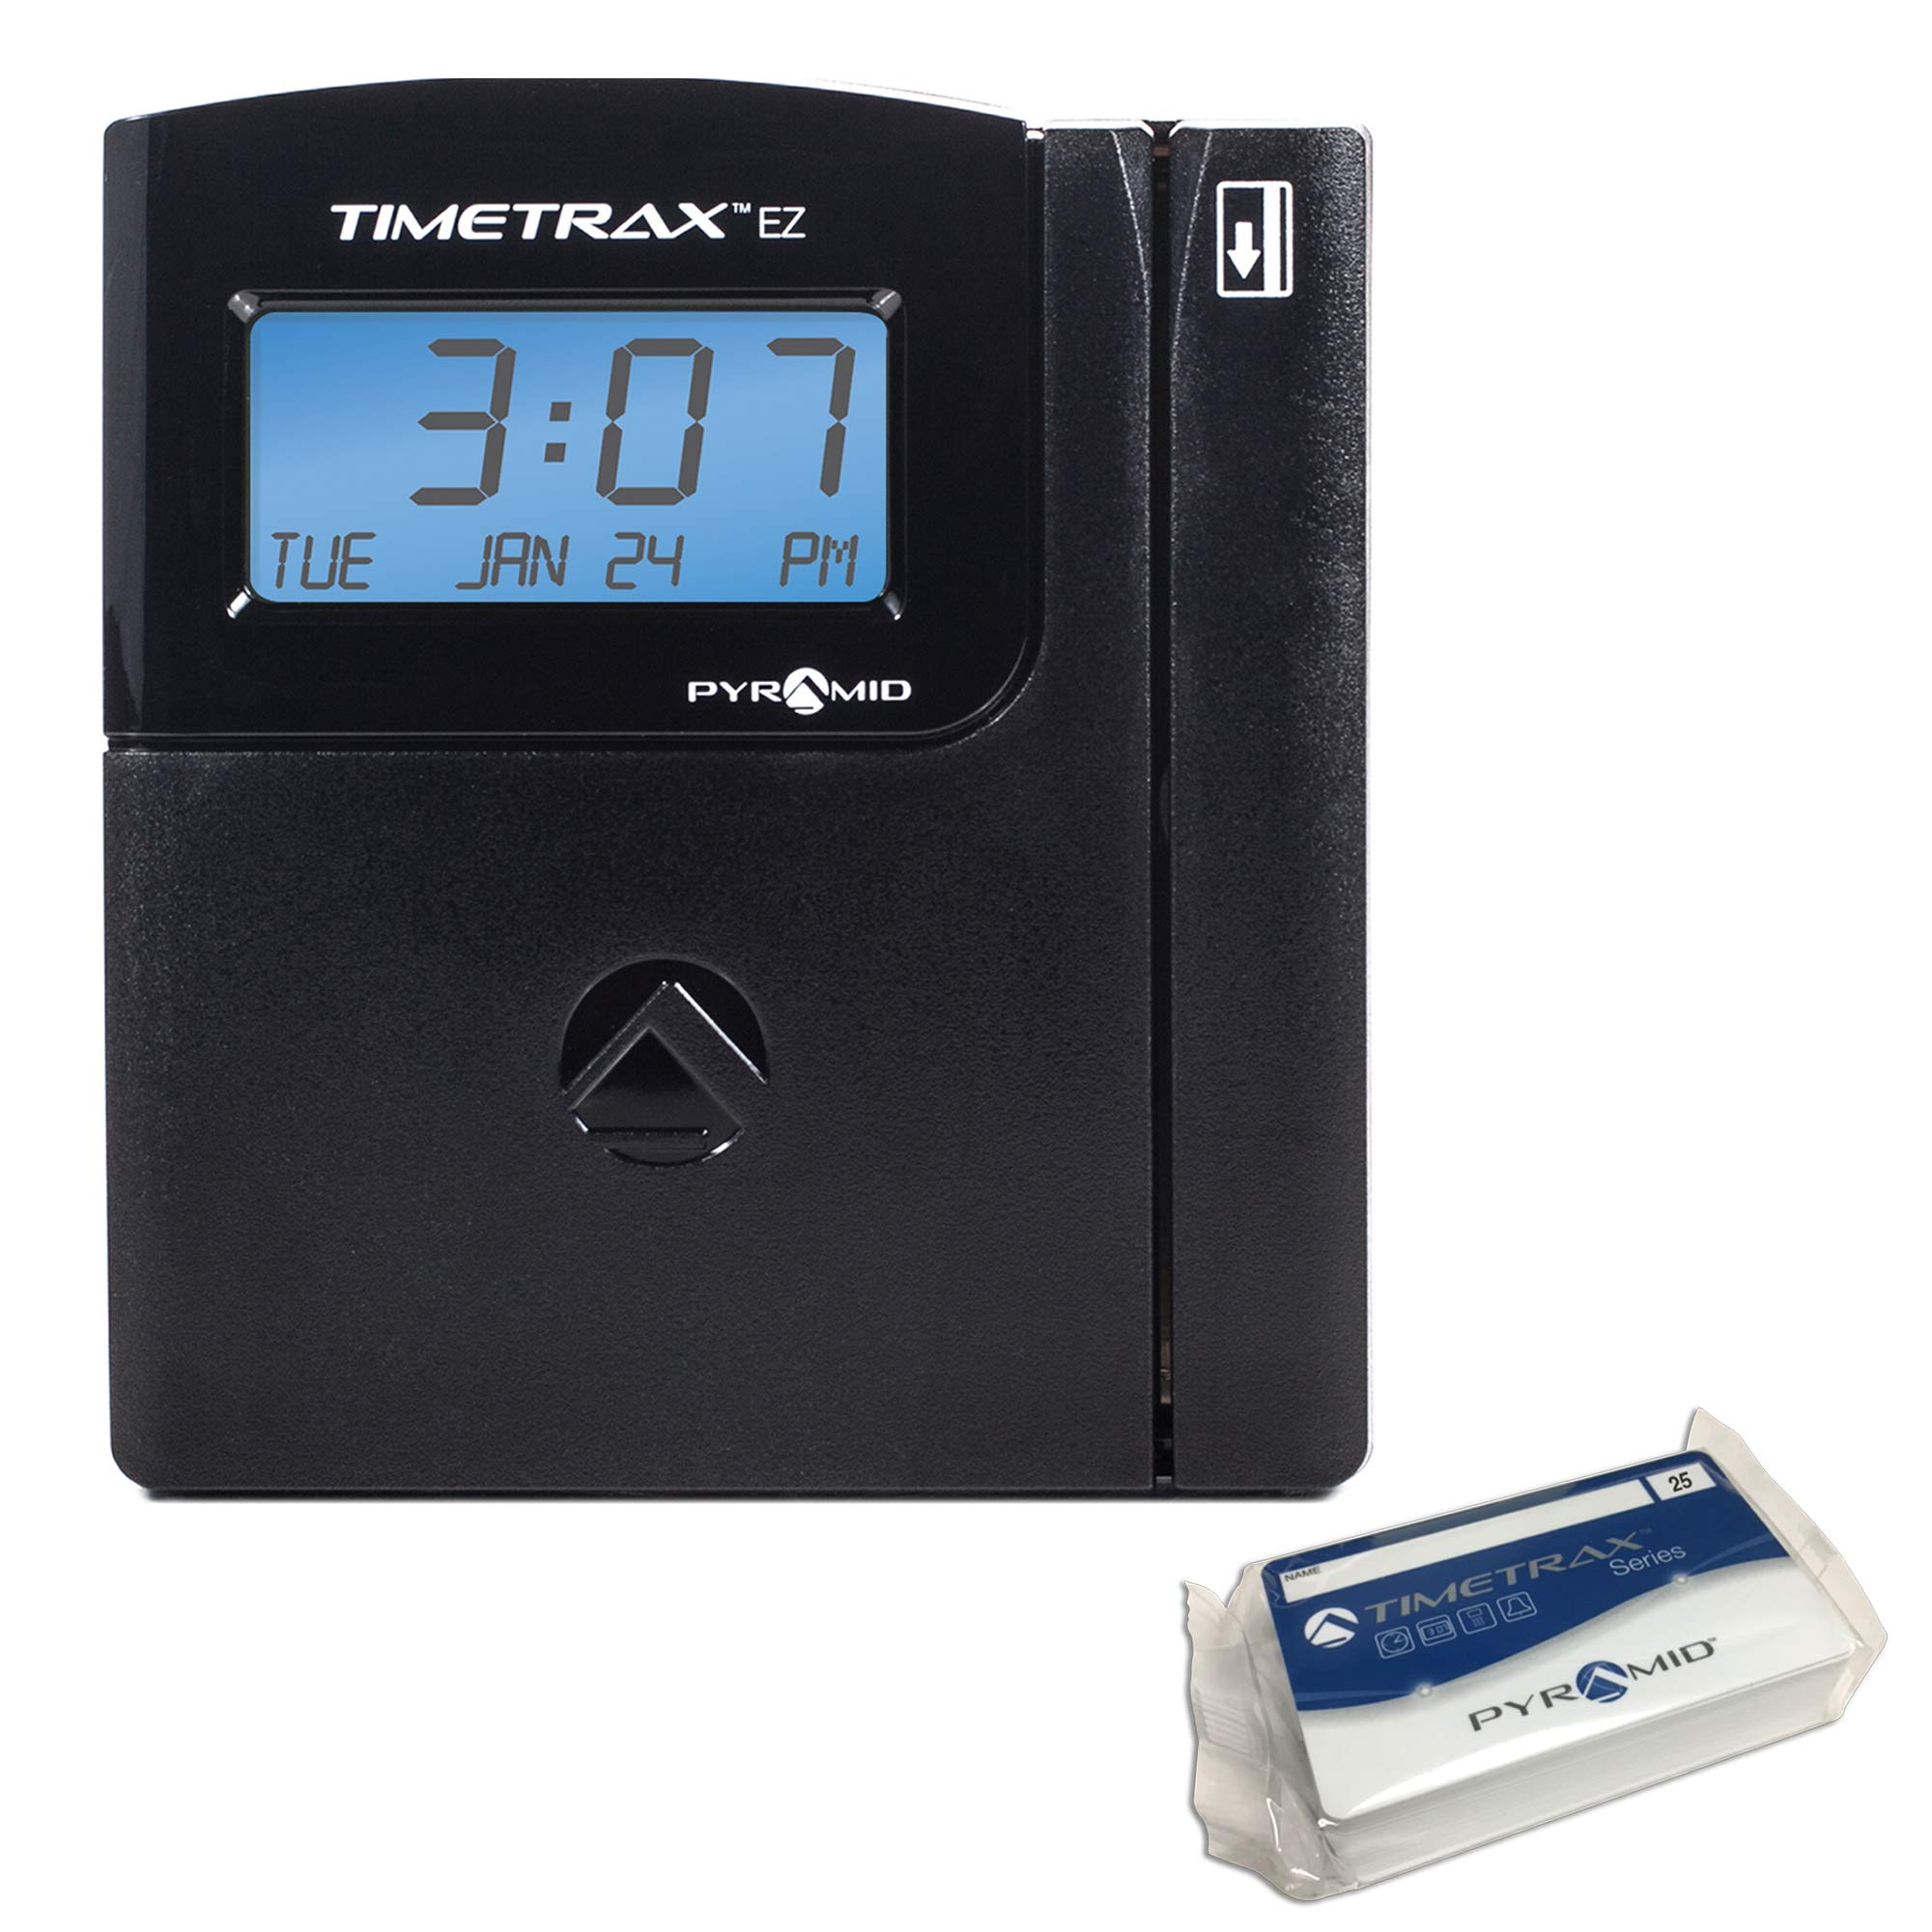 Pyramid TTEZEK TimeTrax Automated Swipe Card Time Clock System with Software, Black by Pyramid Time Systems